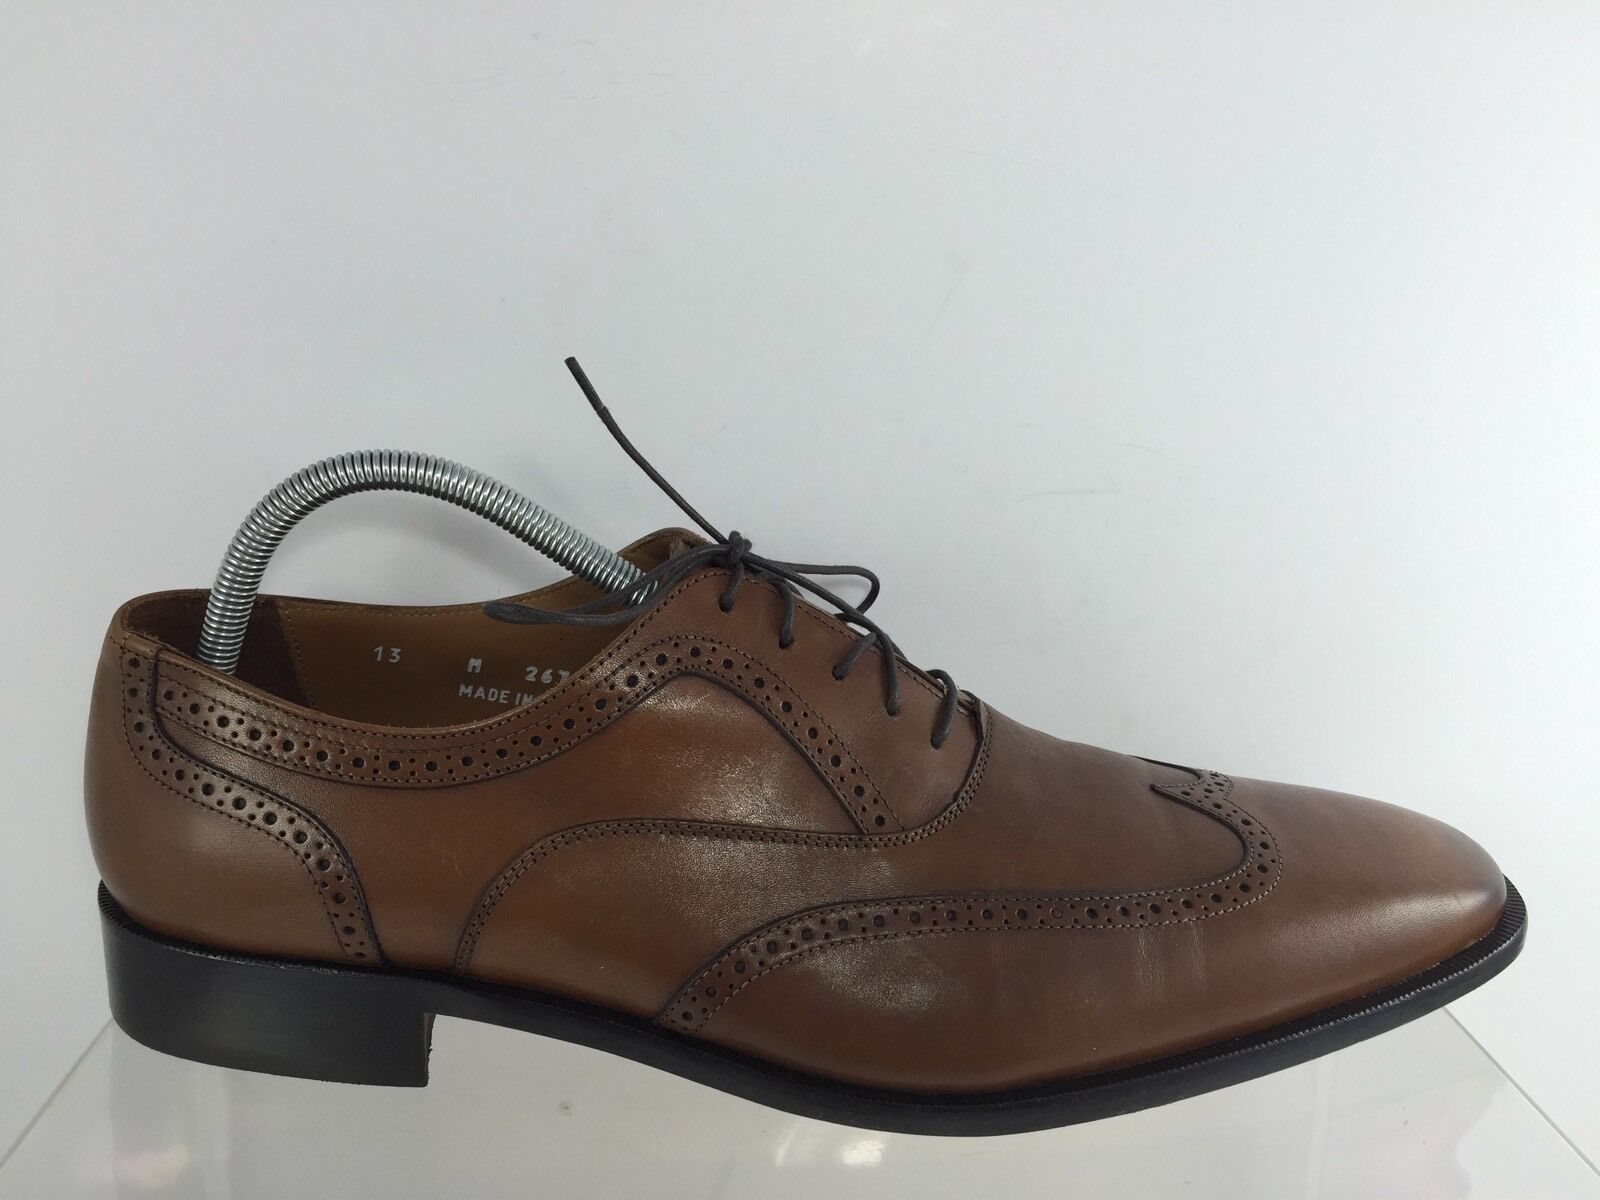 Broletto Mens Brown Dress shoes 13 M